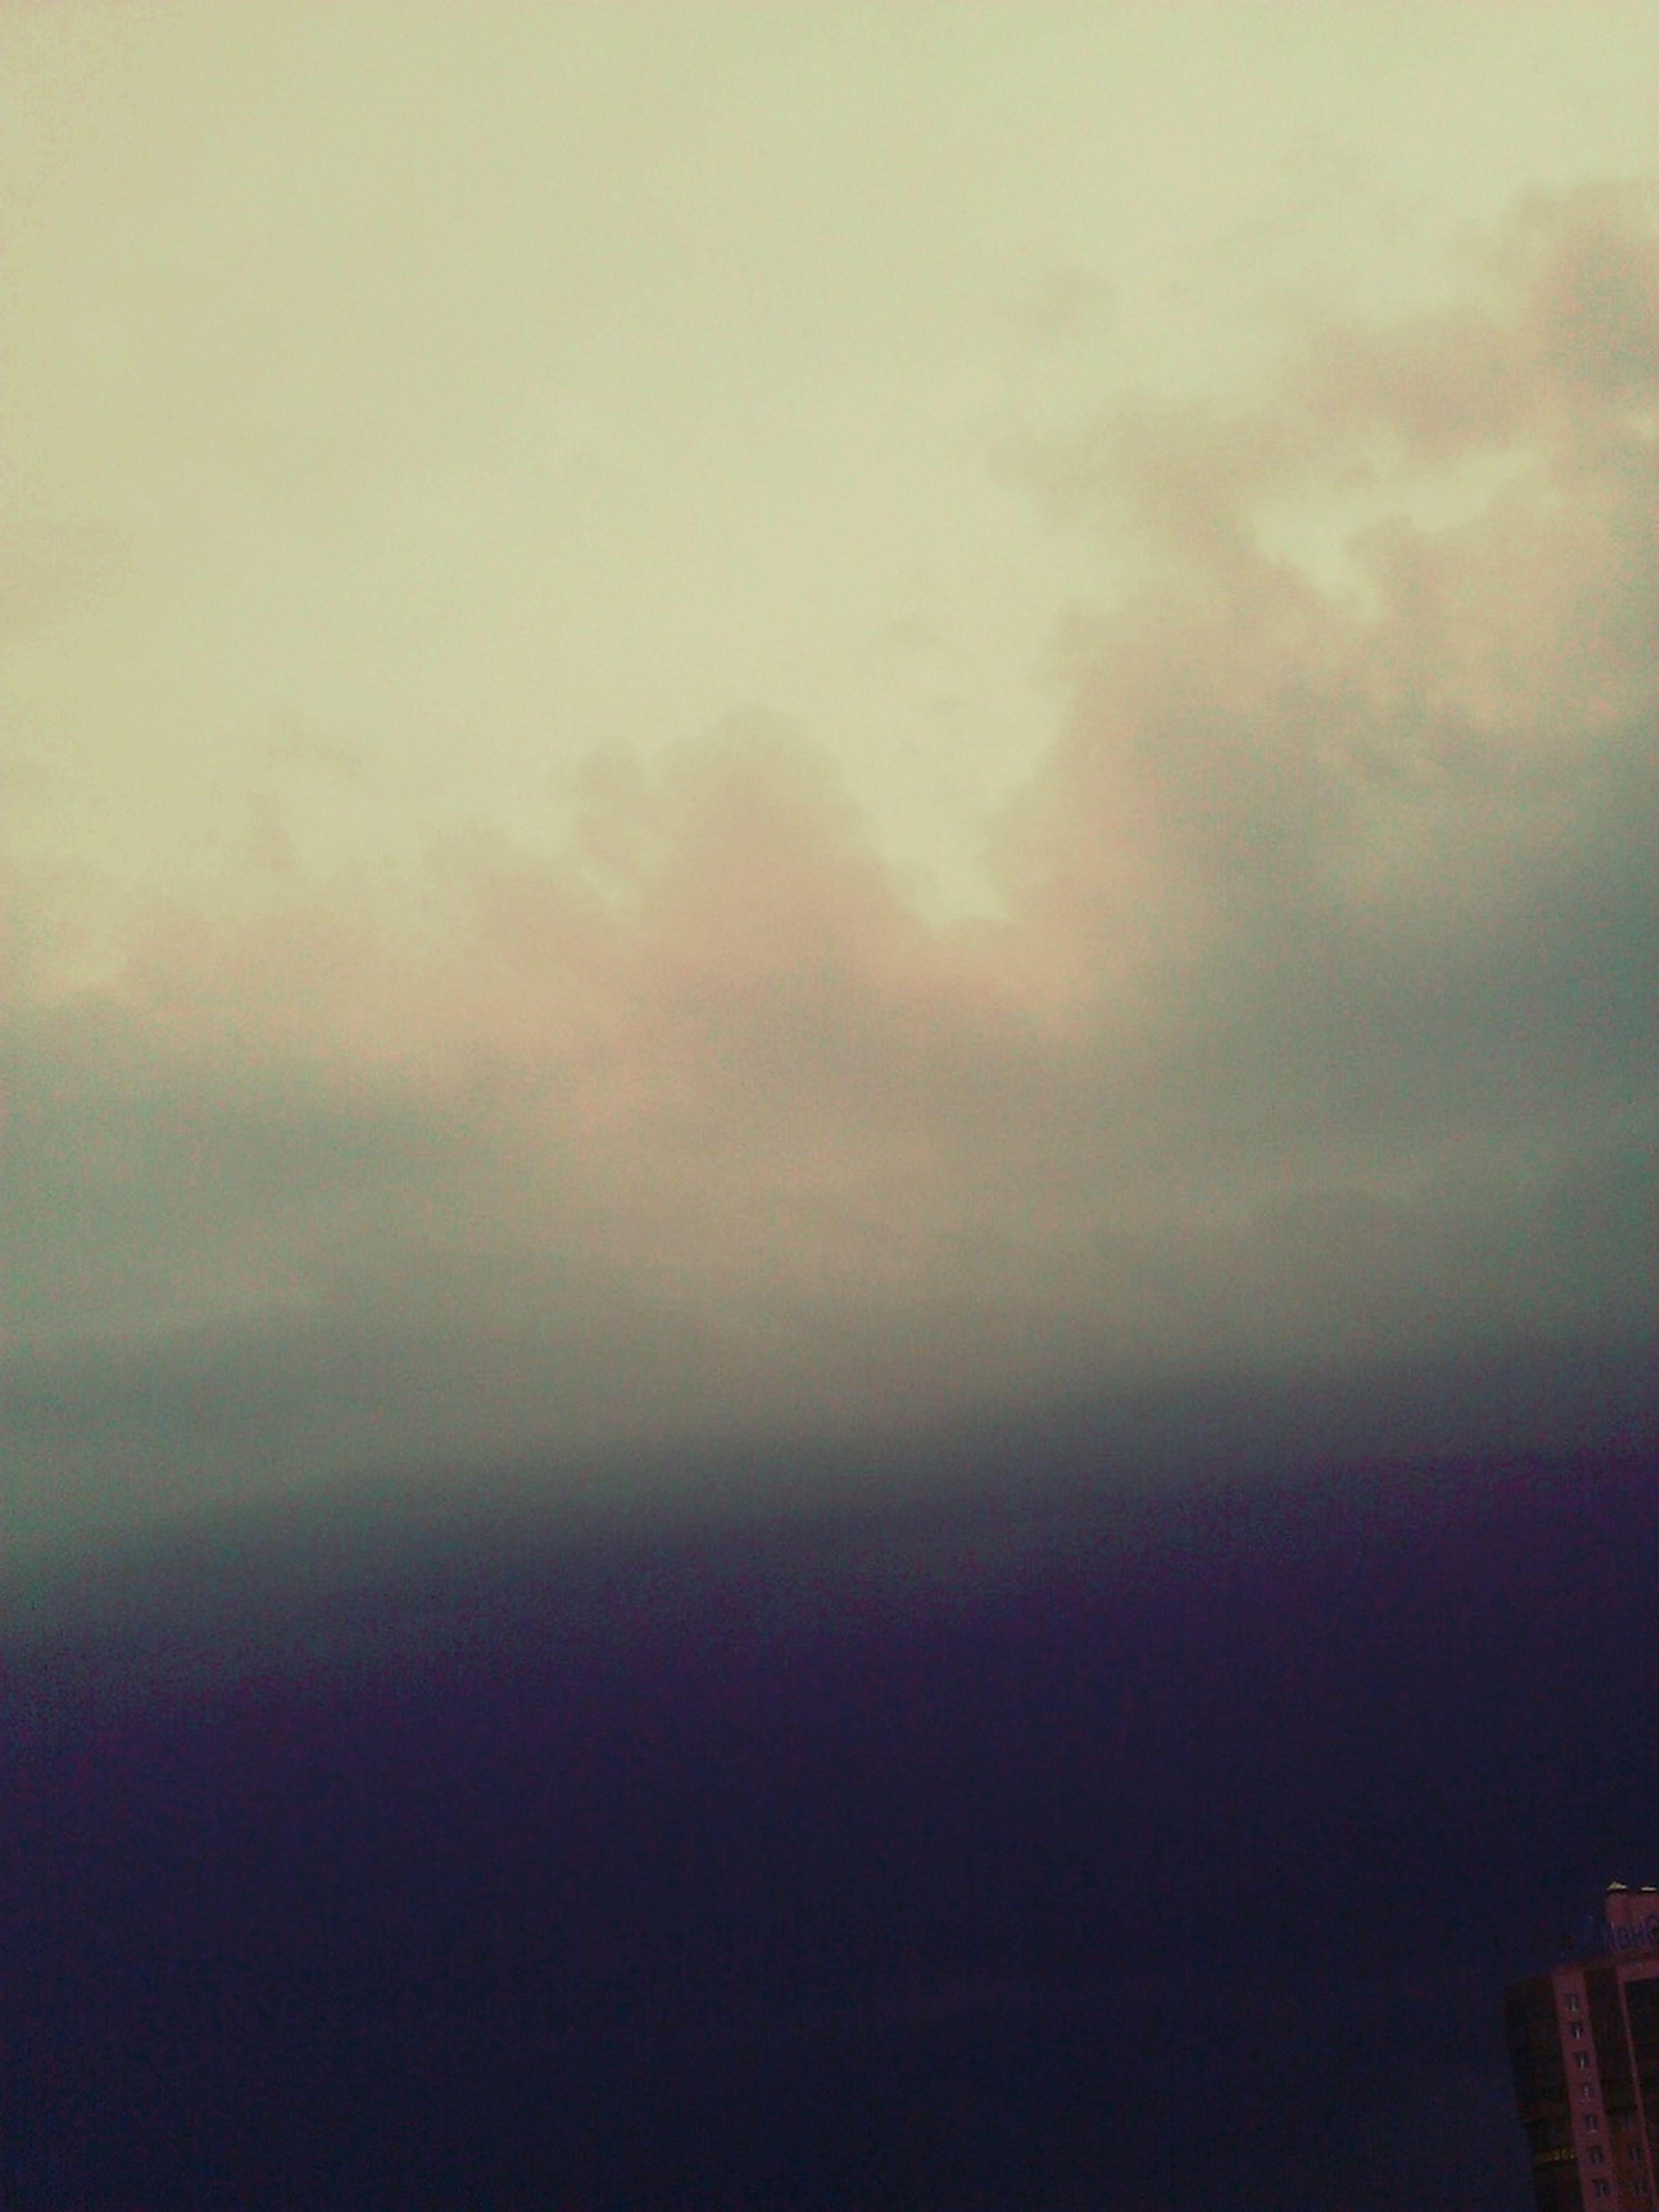 sky, built structure, low angle view, architecture, cloud - sky, building exterior, weather, copy space, cloudy, overcast, silhouette, nature, dusk, scenics, outdoors, beauty in nature, no people, sunset, high section, tranquility